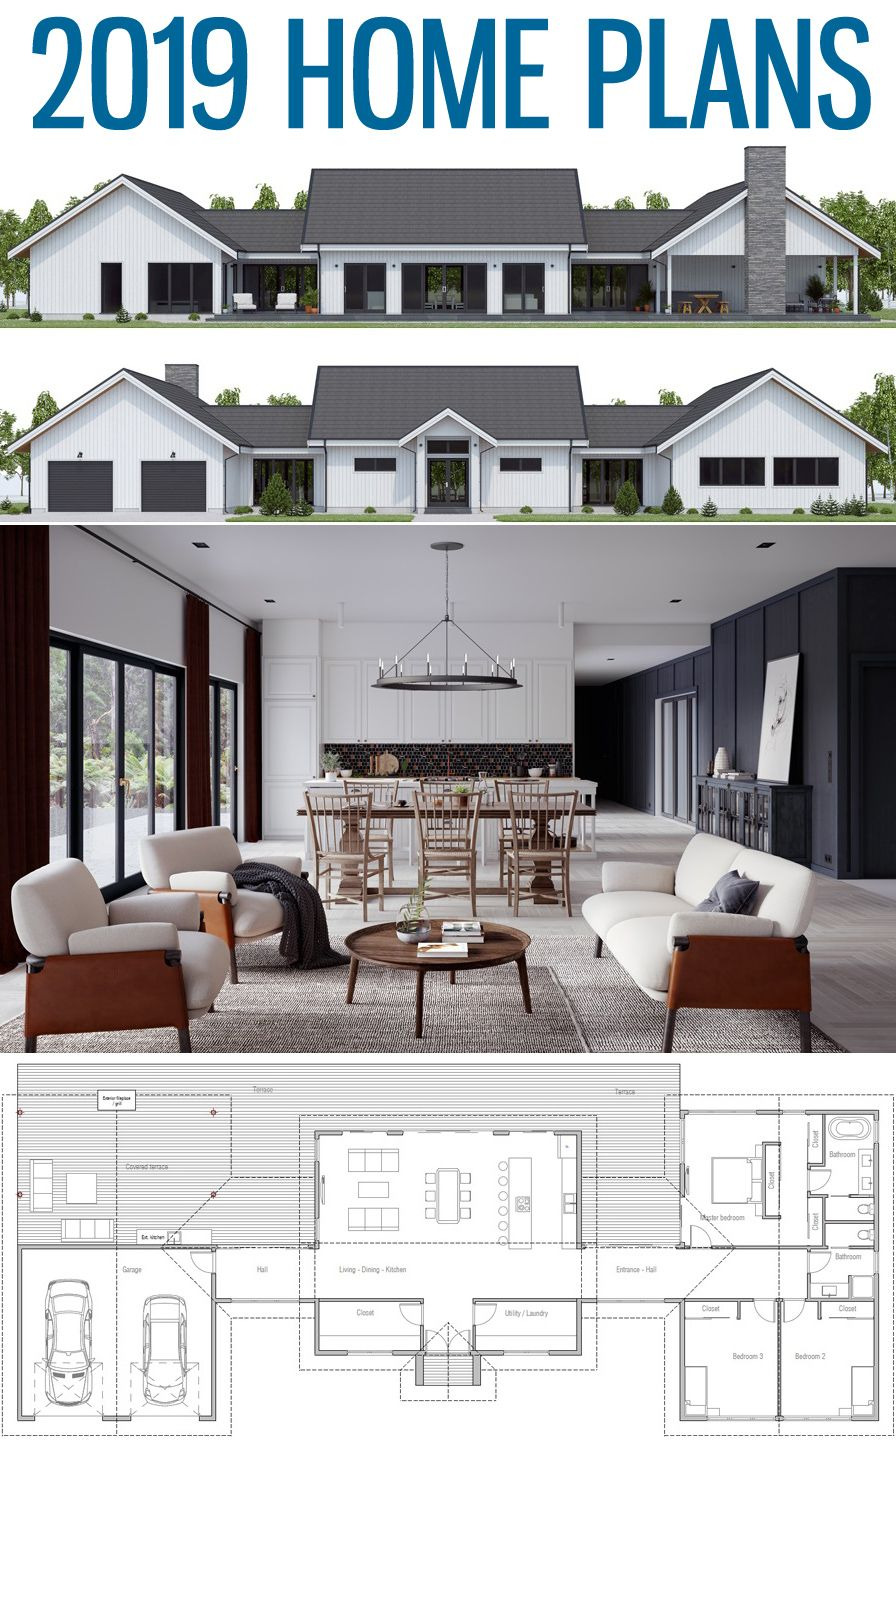 Architectural Design Home Plans New Architecture Architectural Designs Home Plans House Plans